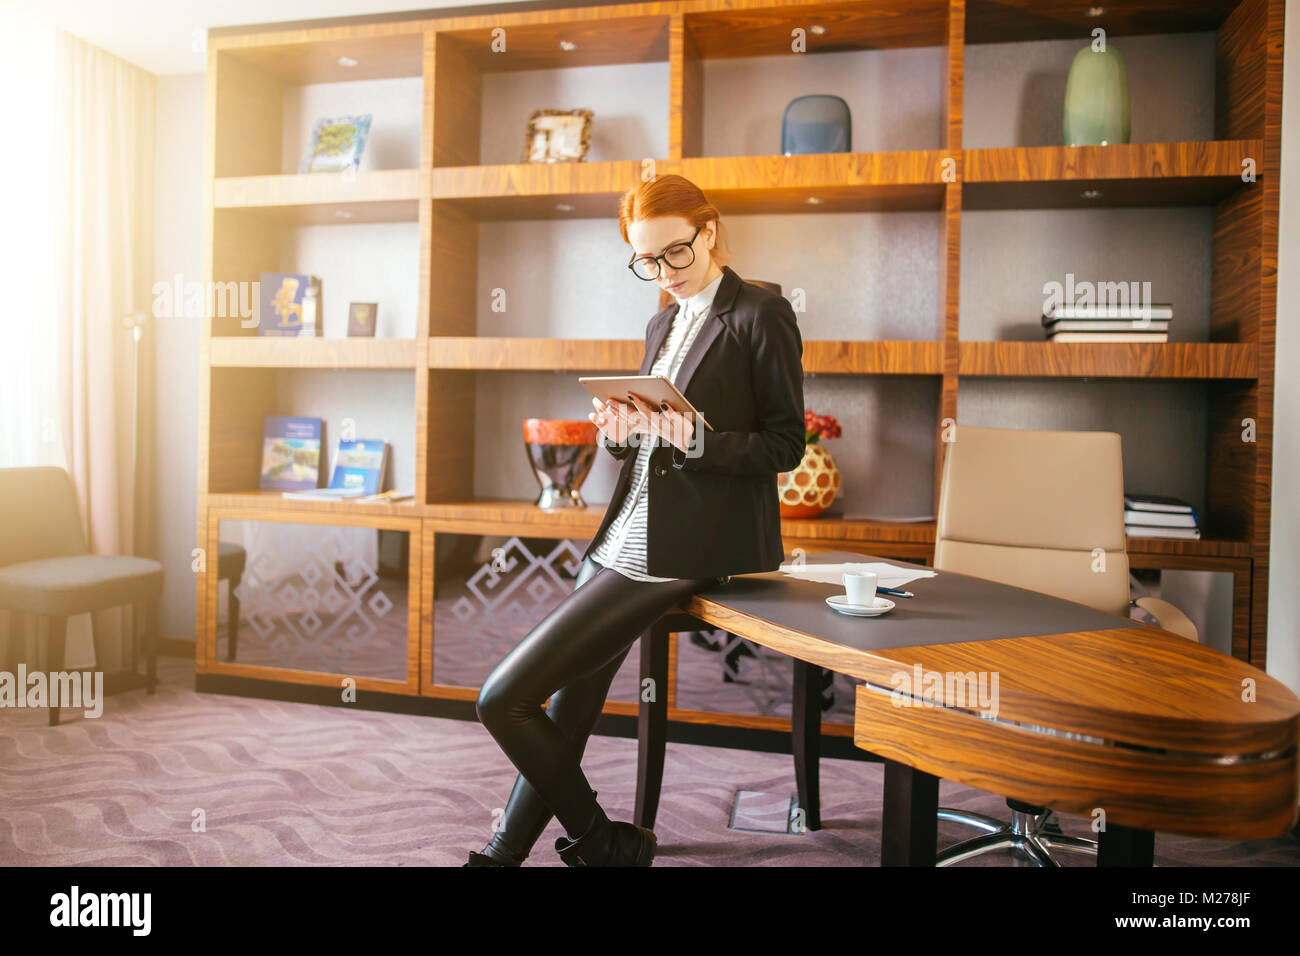 Attractive businesswoman working on a digital tablet in the office. - Stock Image